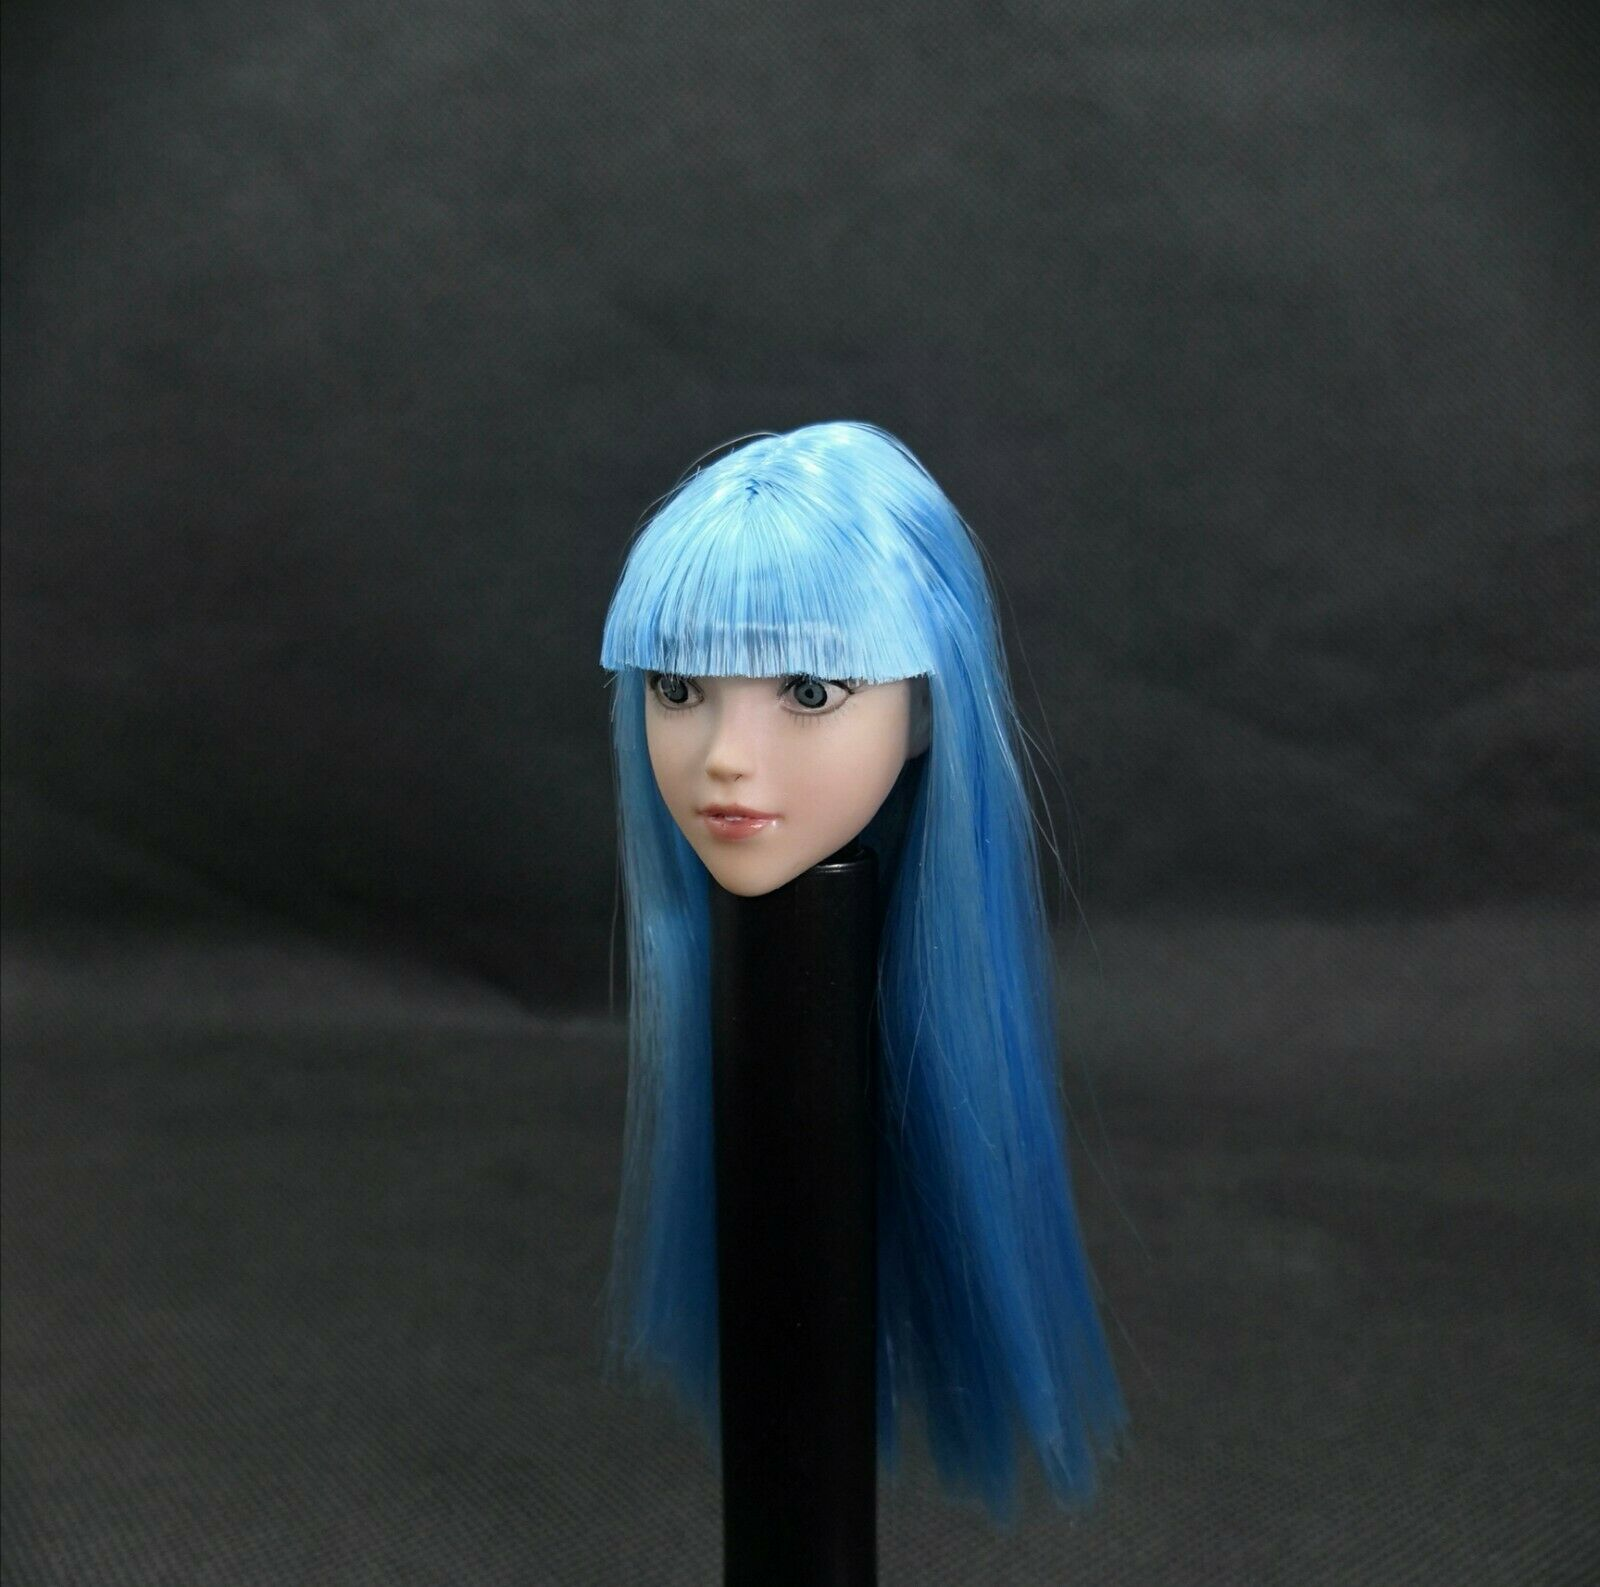 1 6 Scale Beauty Anime Girl Head Carving With bluee Hair Fit 12'' Pale Figure